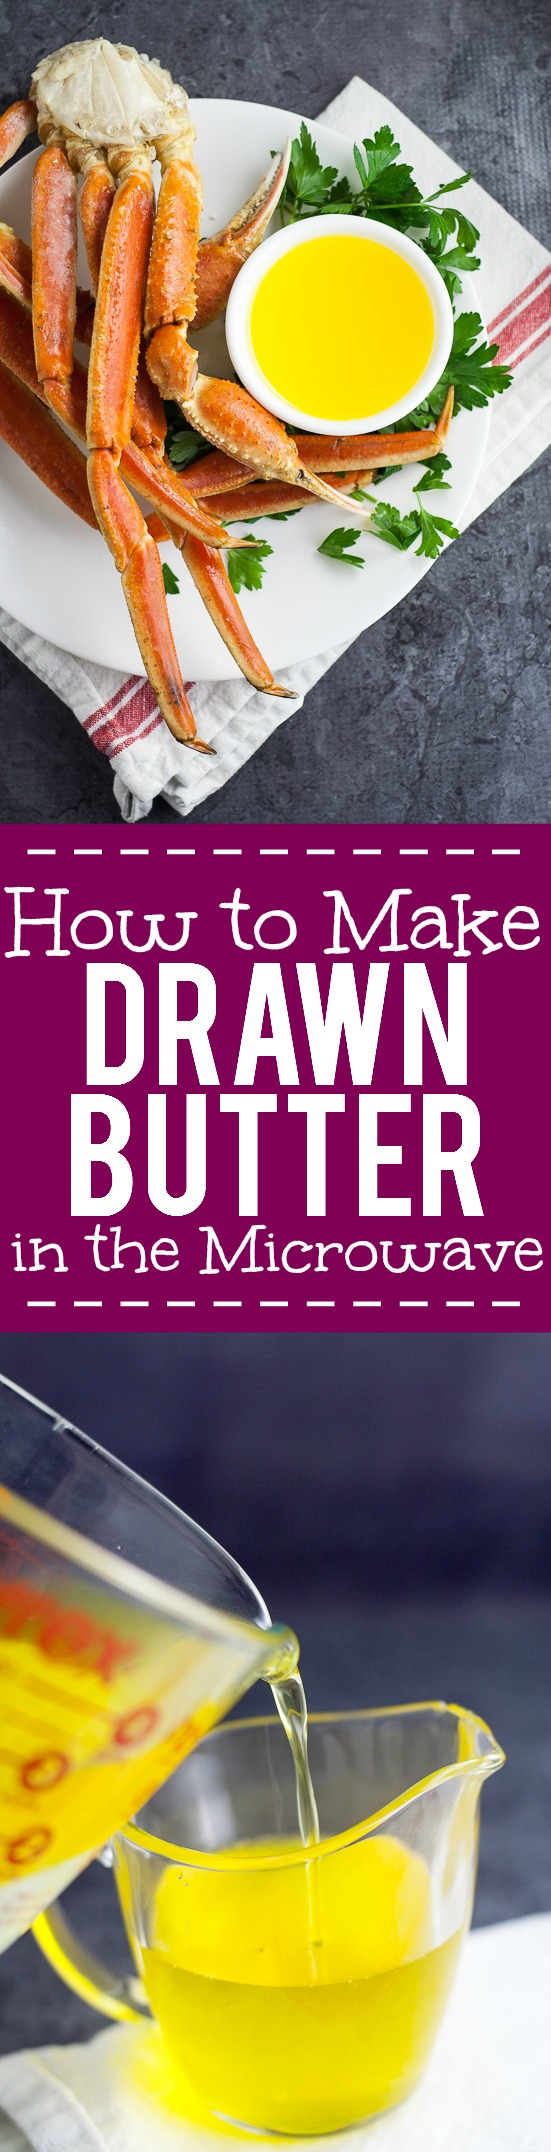 How to Make Clarified Butter in the Microwave Tutorial - Learn how to make clarified butter in the microwave in just 5 simple steps. Drawn butter is perfect for your favorite seafood and so easy to make! Wow! This will be perfect the next time we have surf and turf at home!